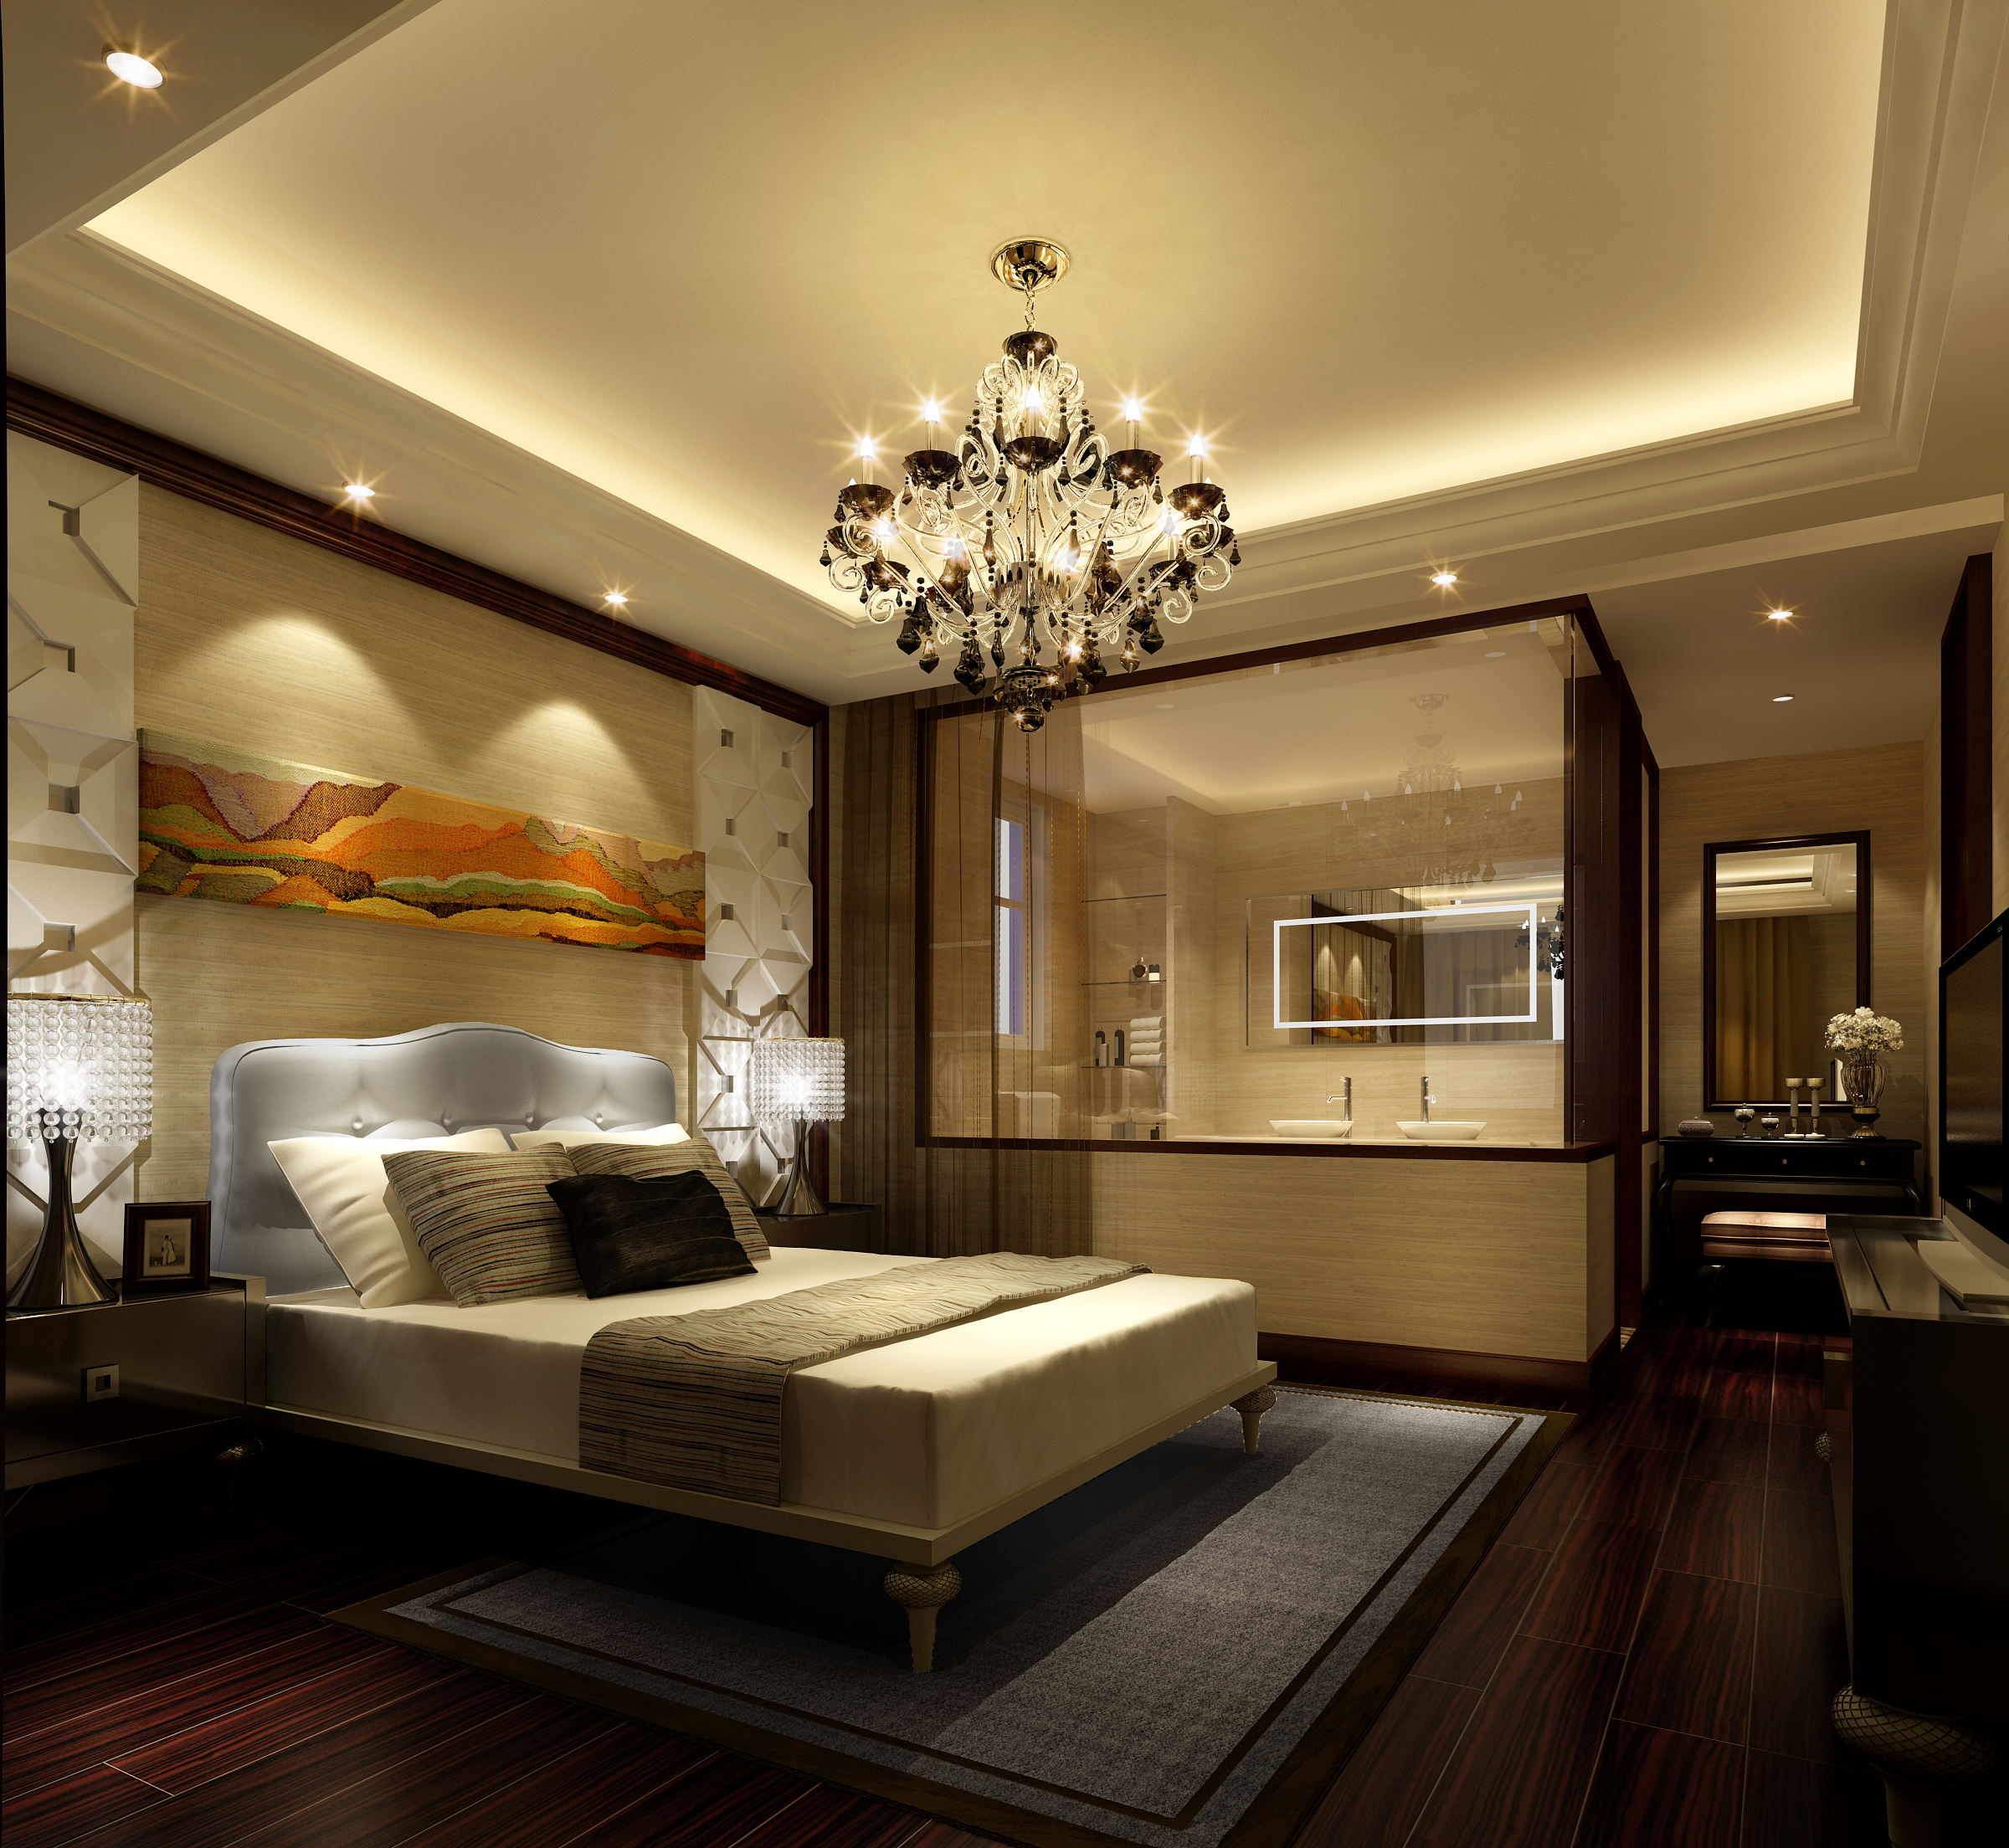 Model Bedroom 3D Bedroom With Bathroom Luxury  Cgtrader